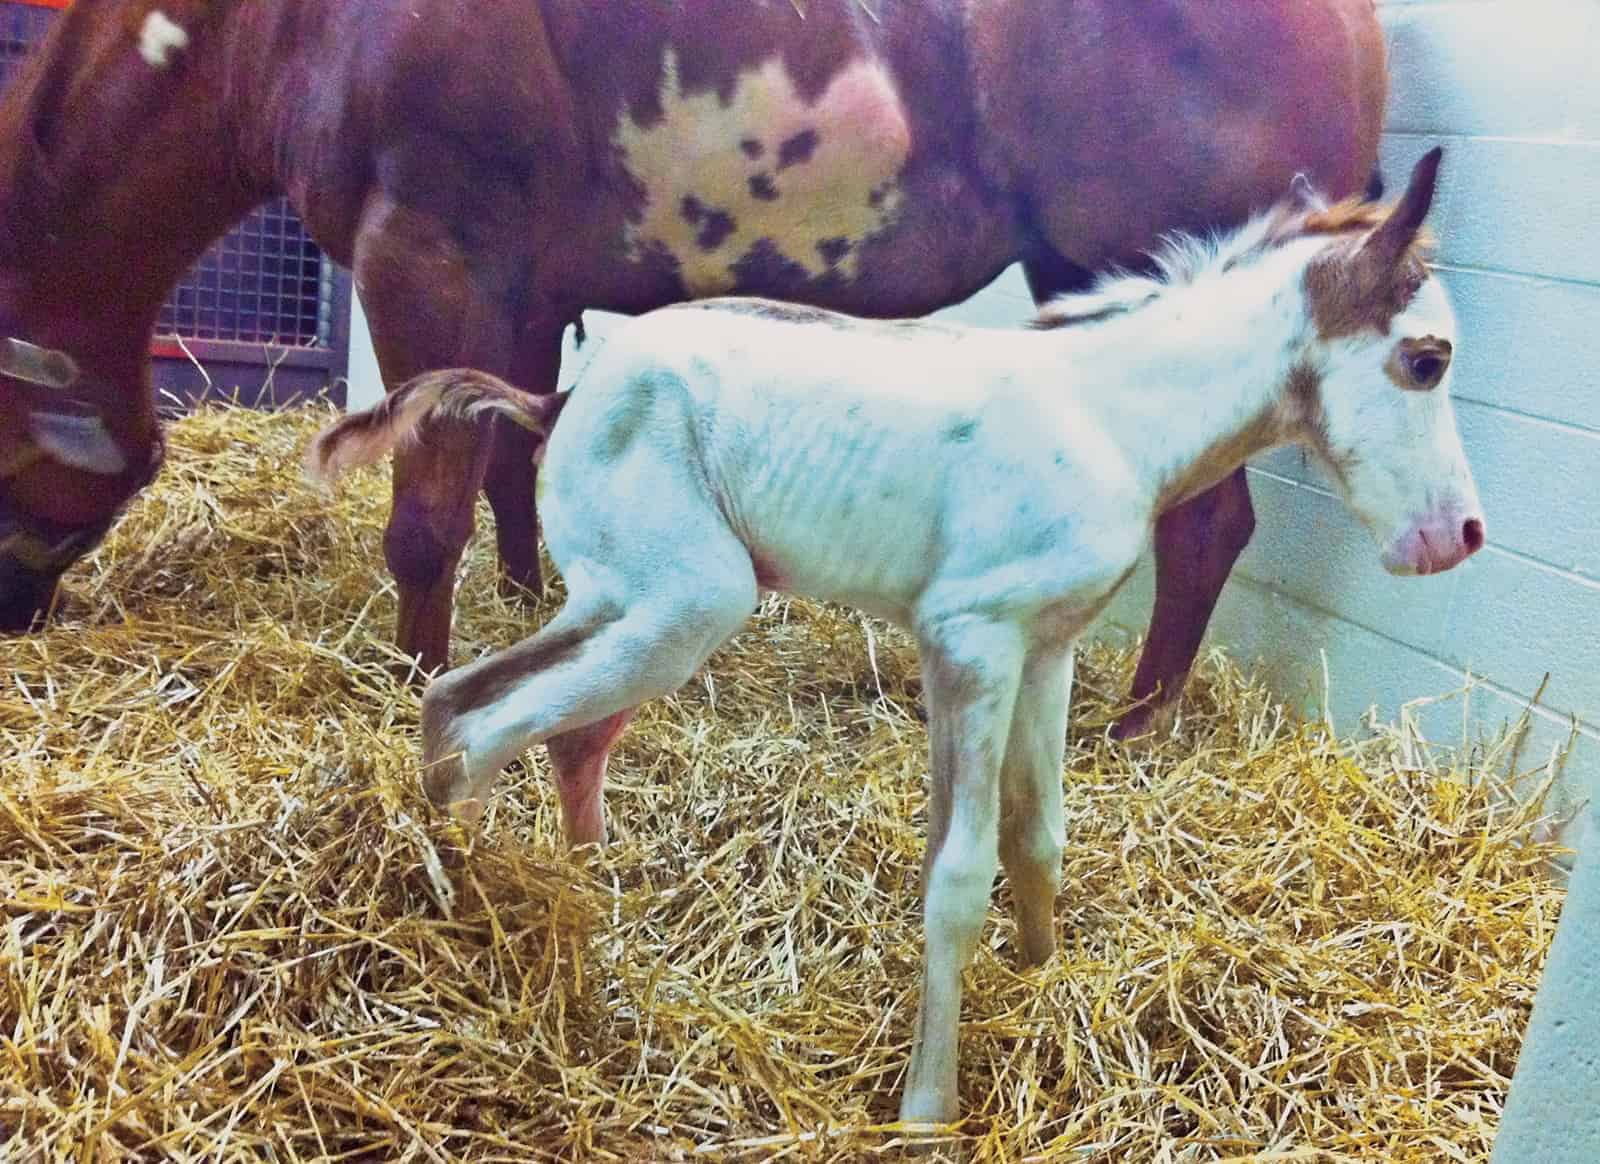 Watch for Meconium Impactions in Foals